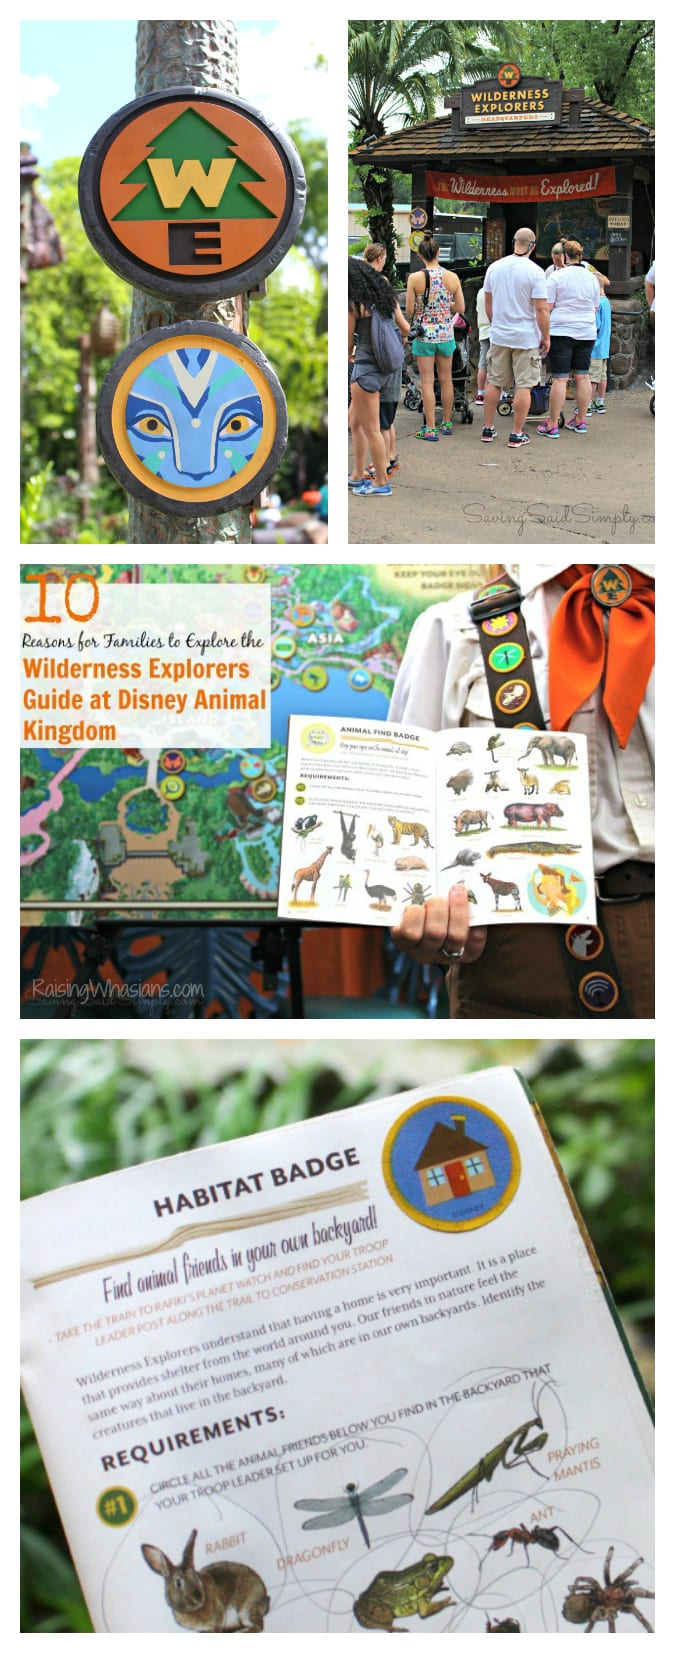 wilderness explorers guide pinteret